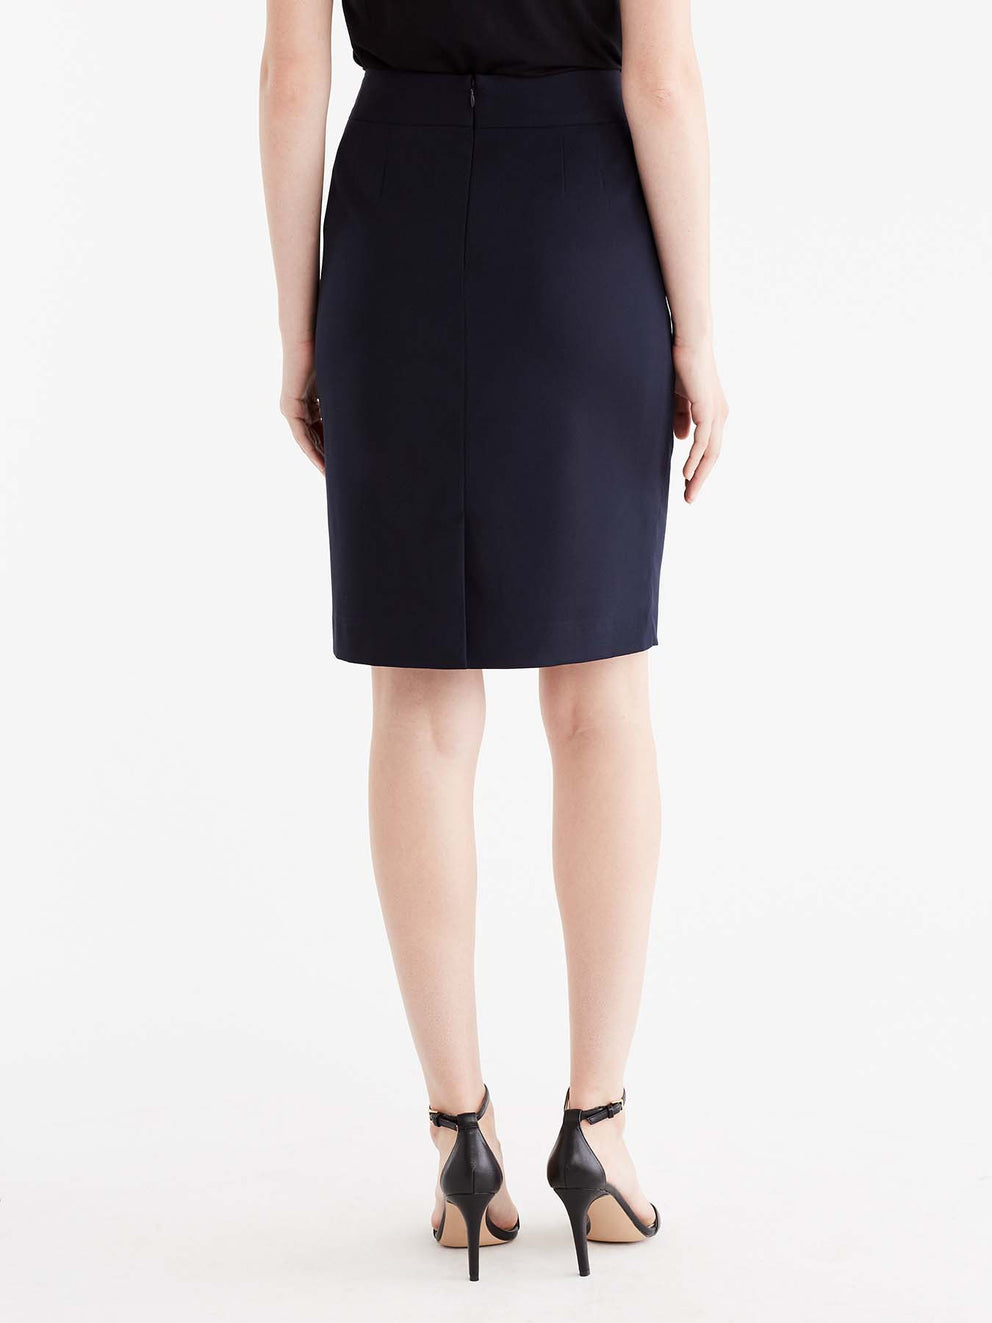 The Jones New York Washable Pencil Skirt in color Navy - Image Position 6